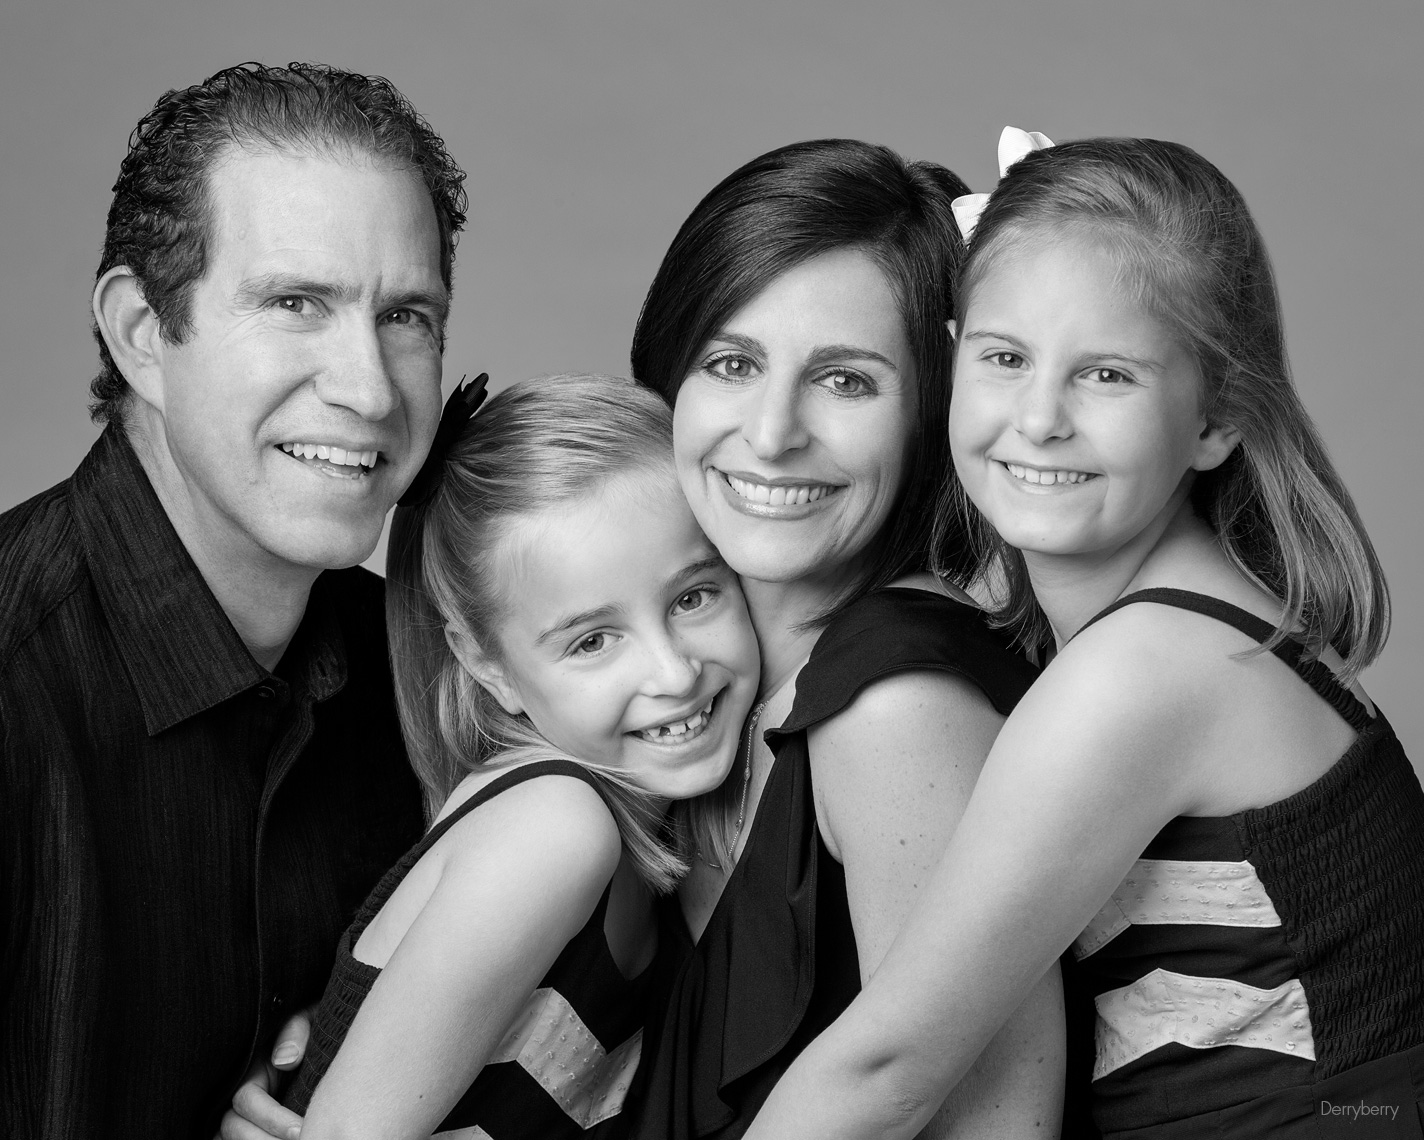 Black and white close-up  family group portrait of the Kronick family  in Dallas, Texas by photographer John Derryberry Photography